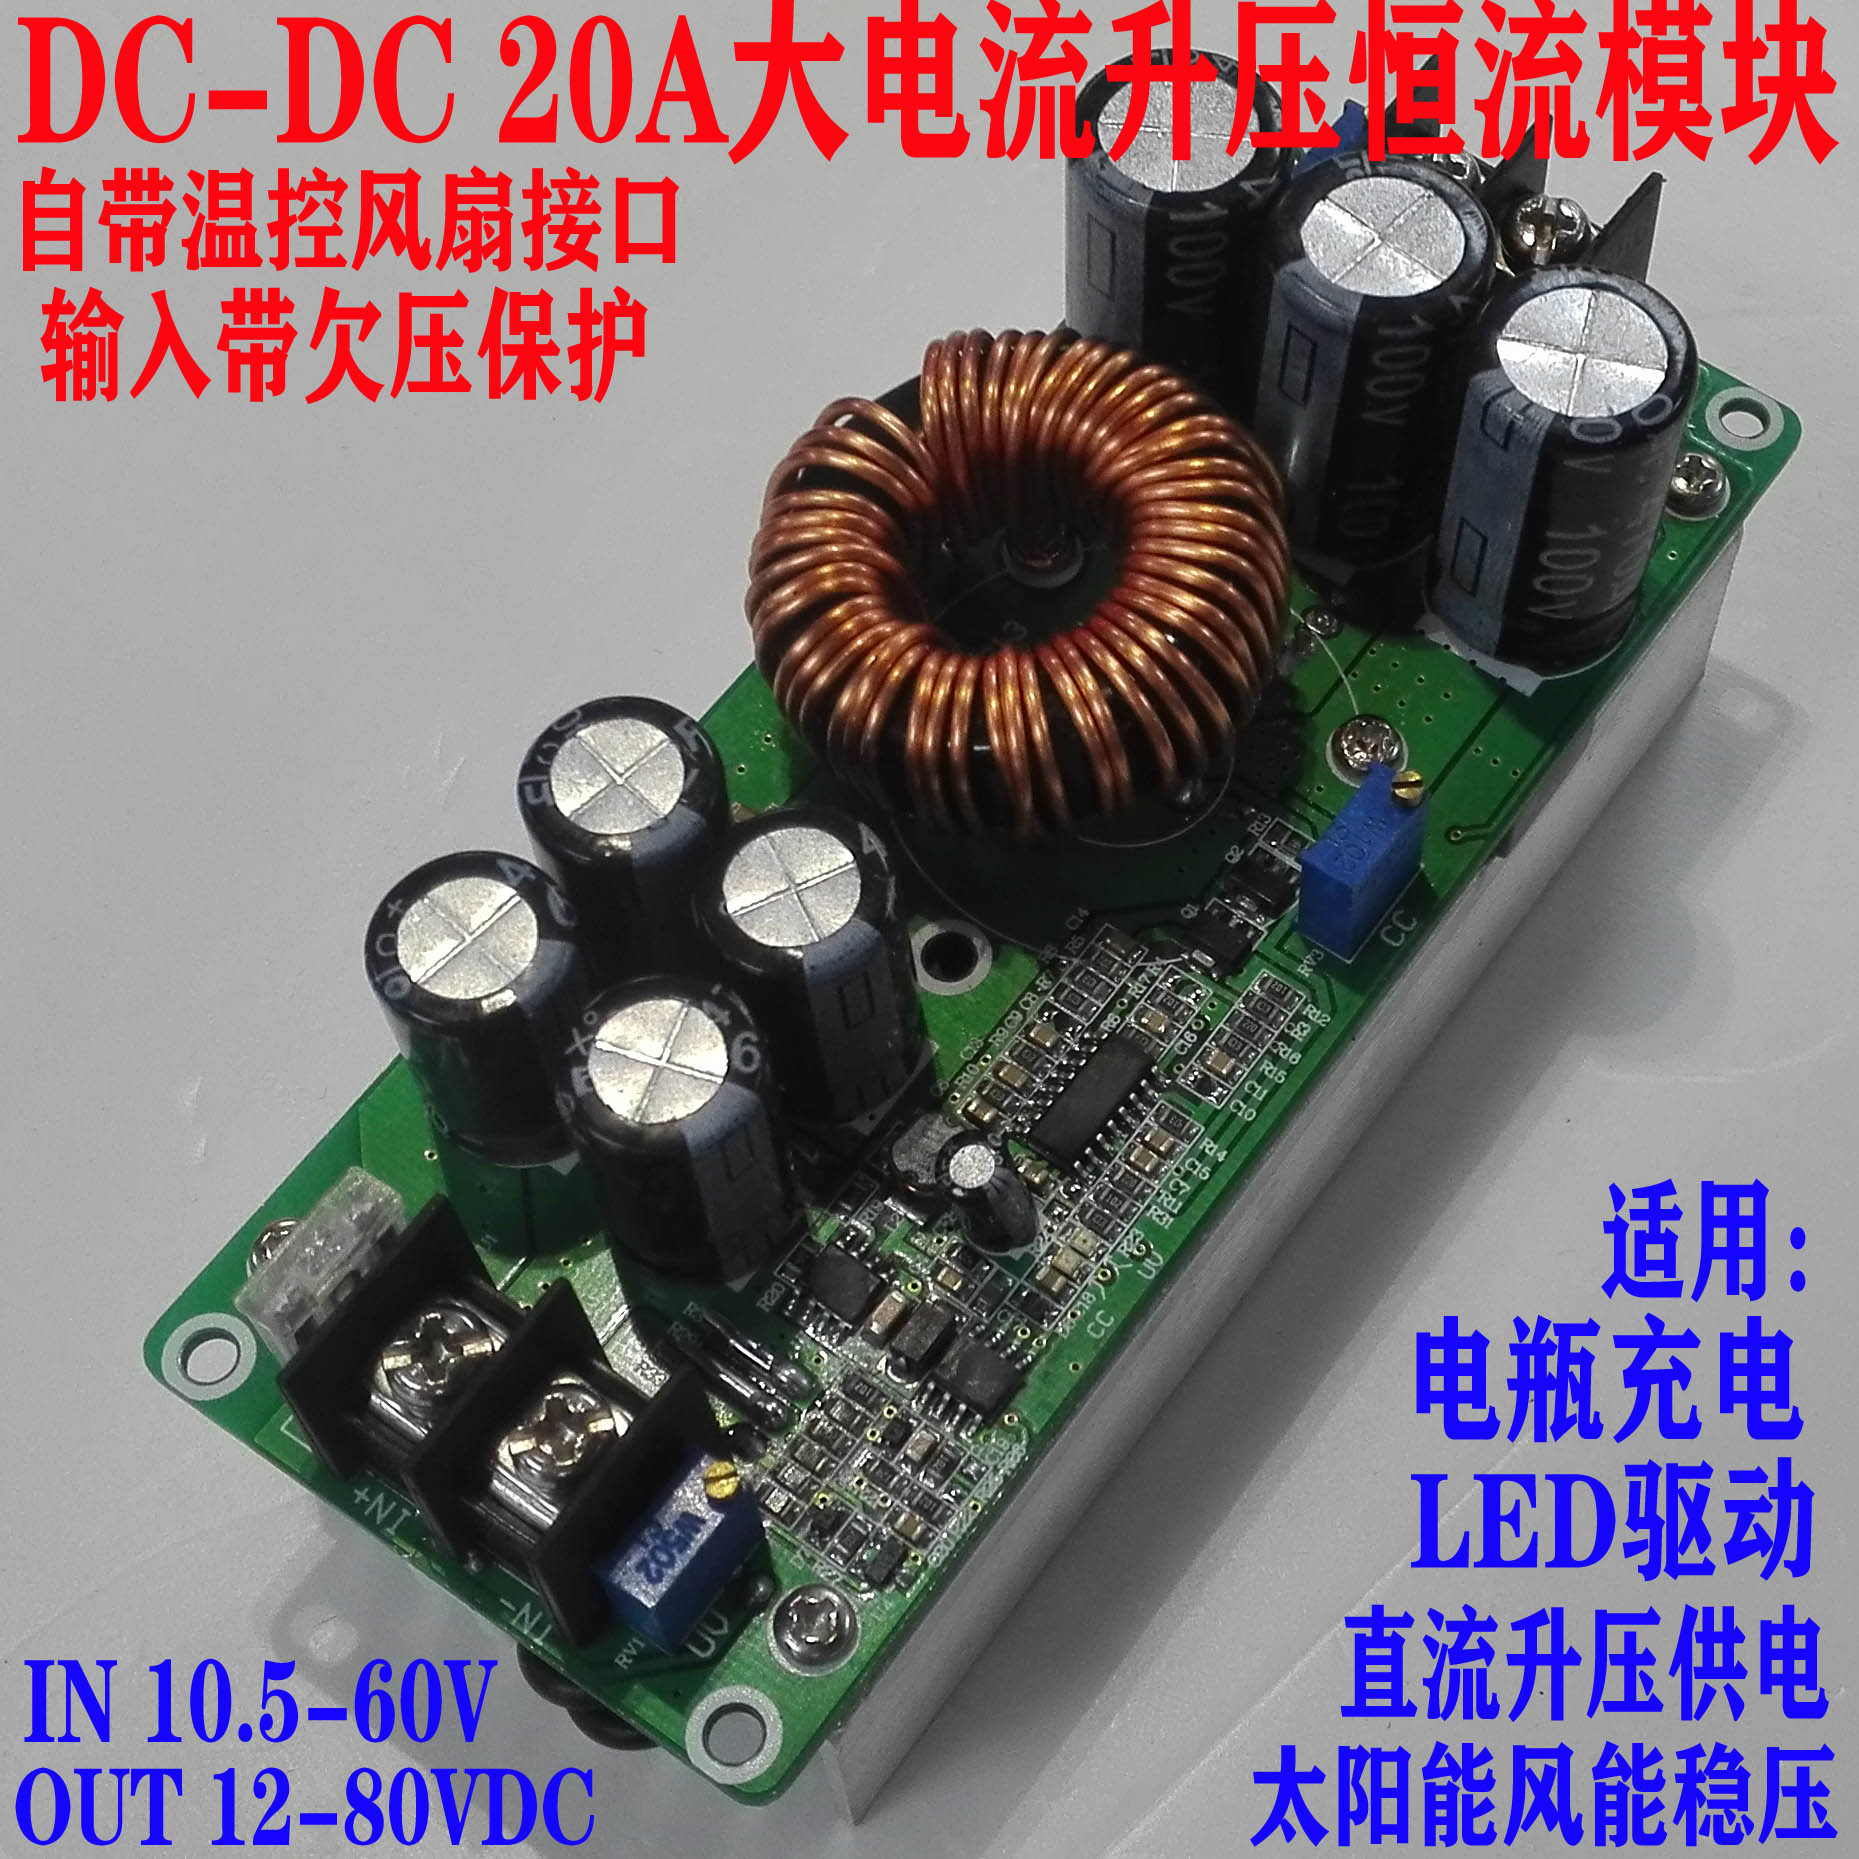 1200W DC-DC 20A constant voltage constant current high power boost module solar charging 12-80V solar energy wind power regulator charging automatic buck voltage constant voltage constant current adjustable power supply